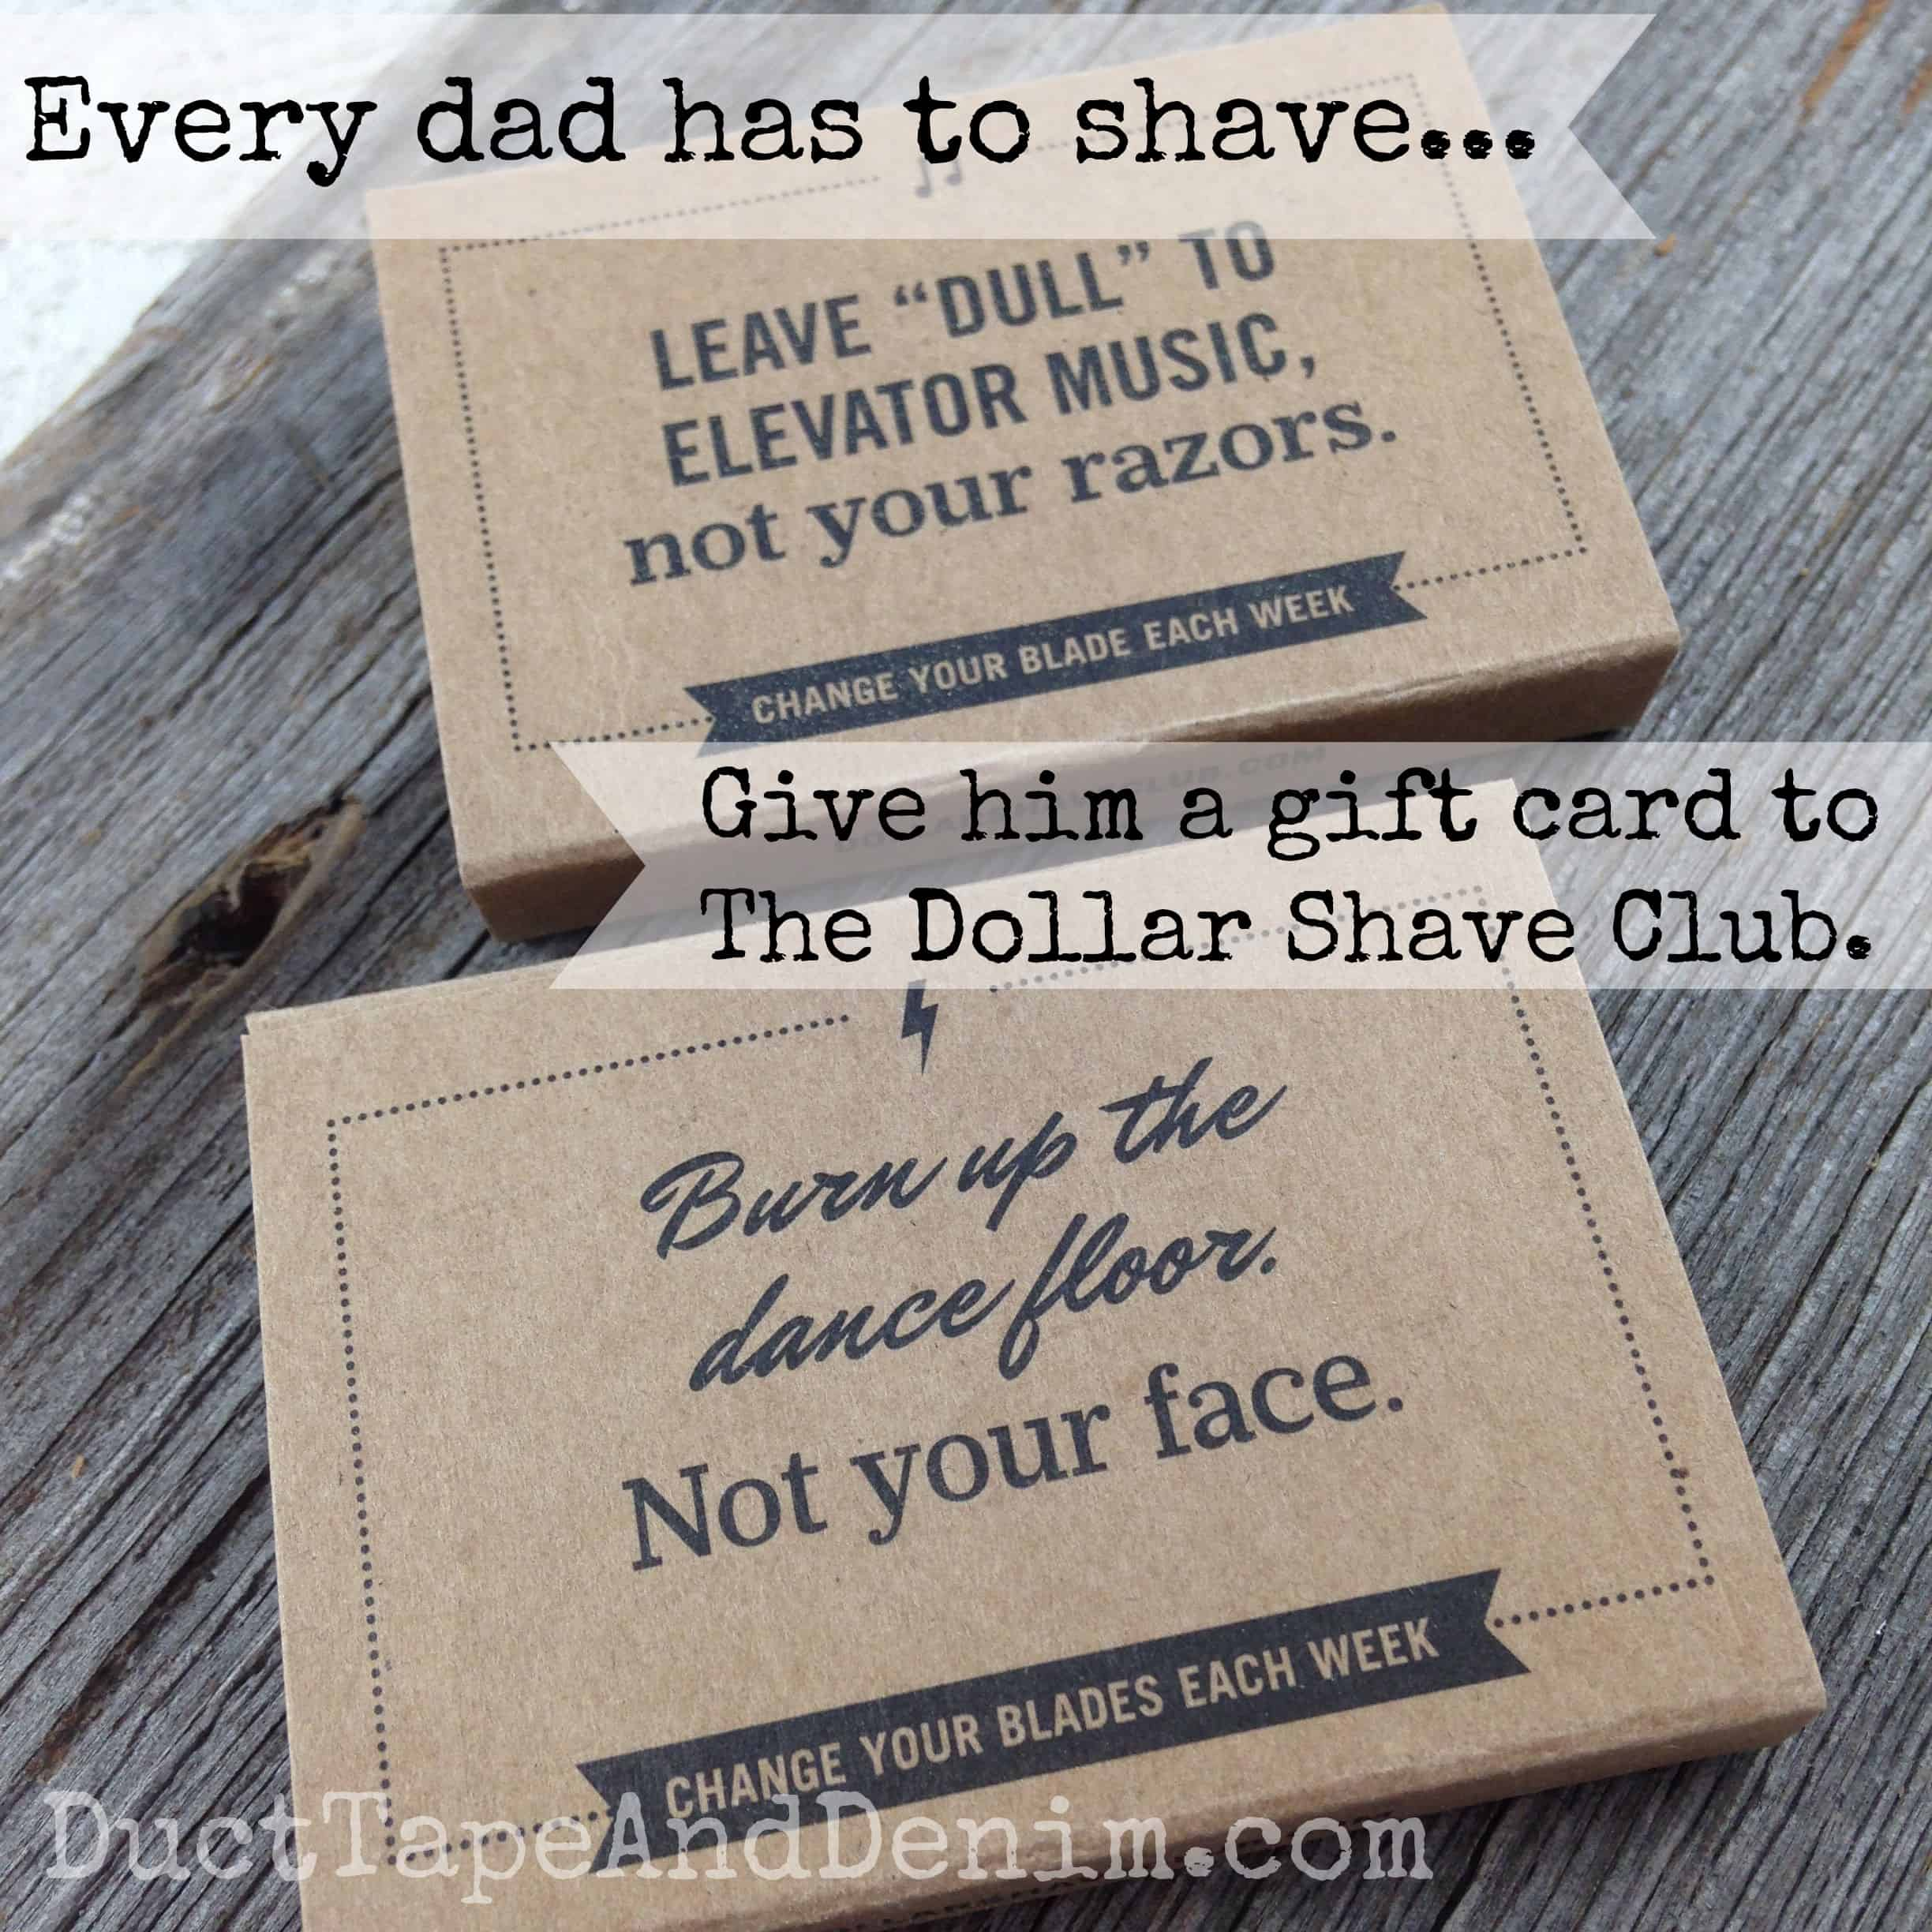 About us. Dollar Shave Club is a lifestyle brand and e-commerce company that's revolutionizing the bathroom by inventing smart, affordable products to make Member's lives easier.